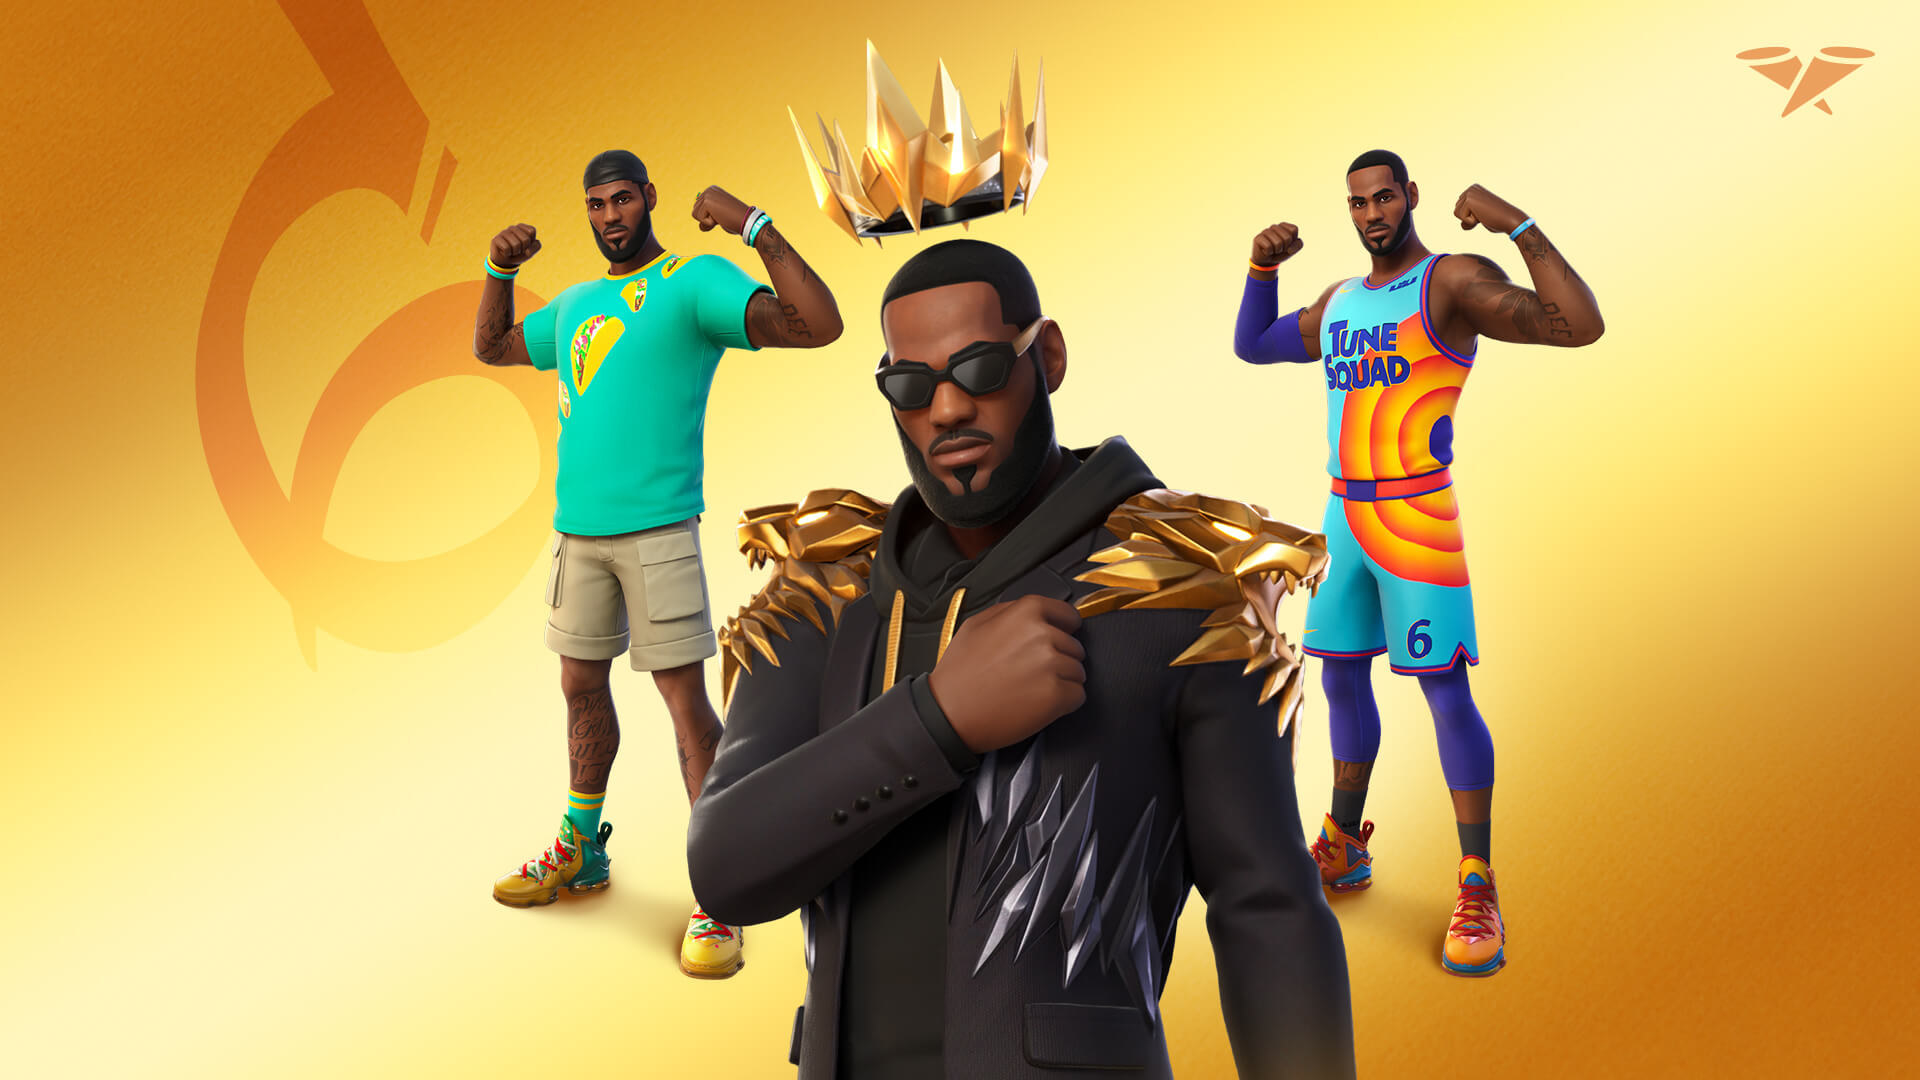 LeBron James poses in three different outfits as part of the King James bundle on Fortnite